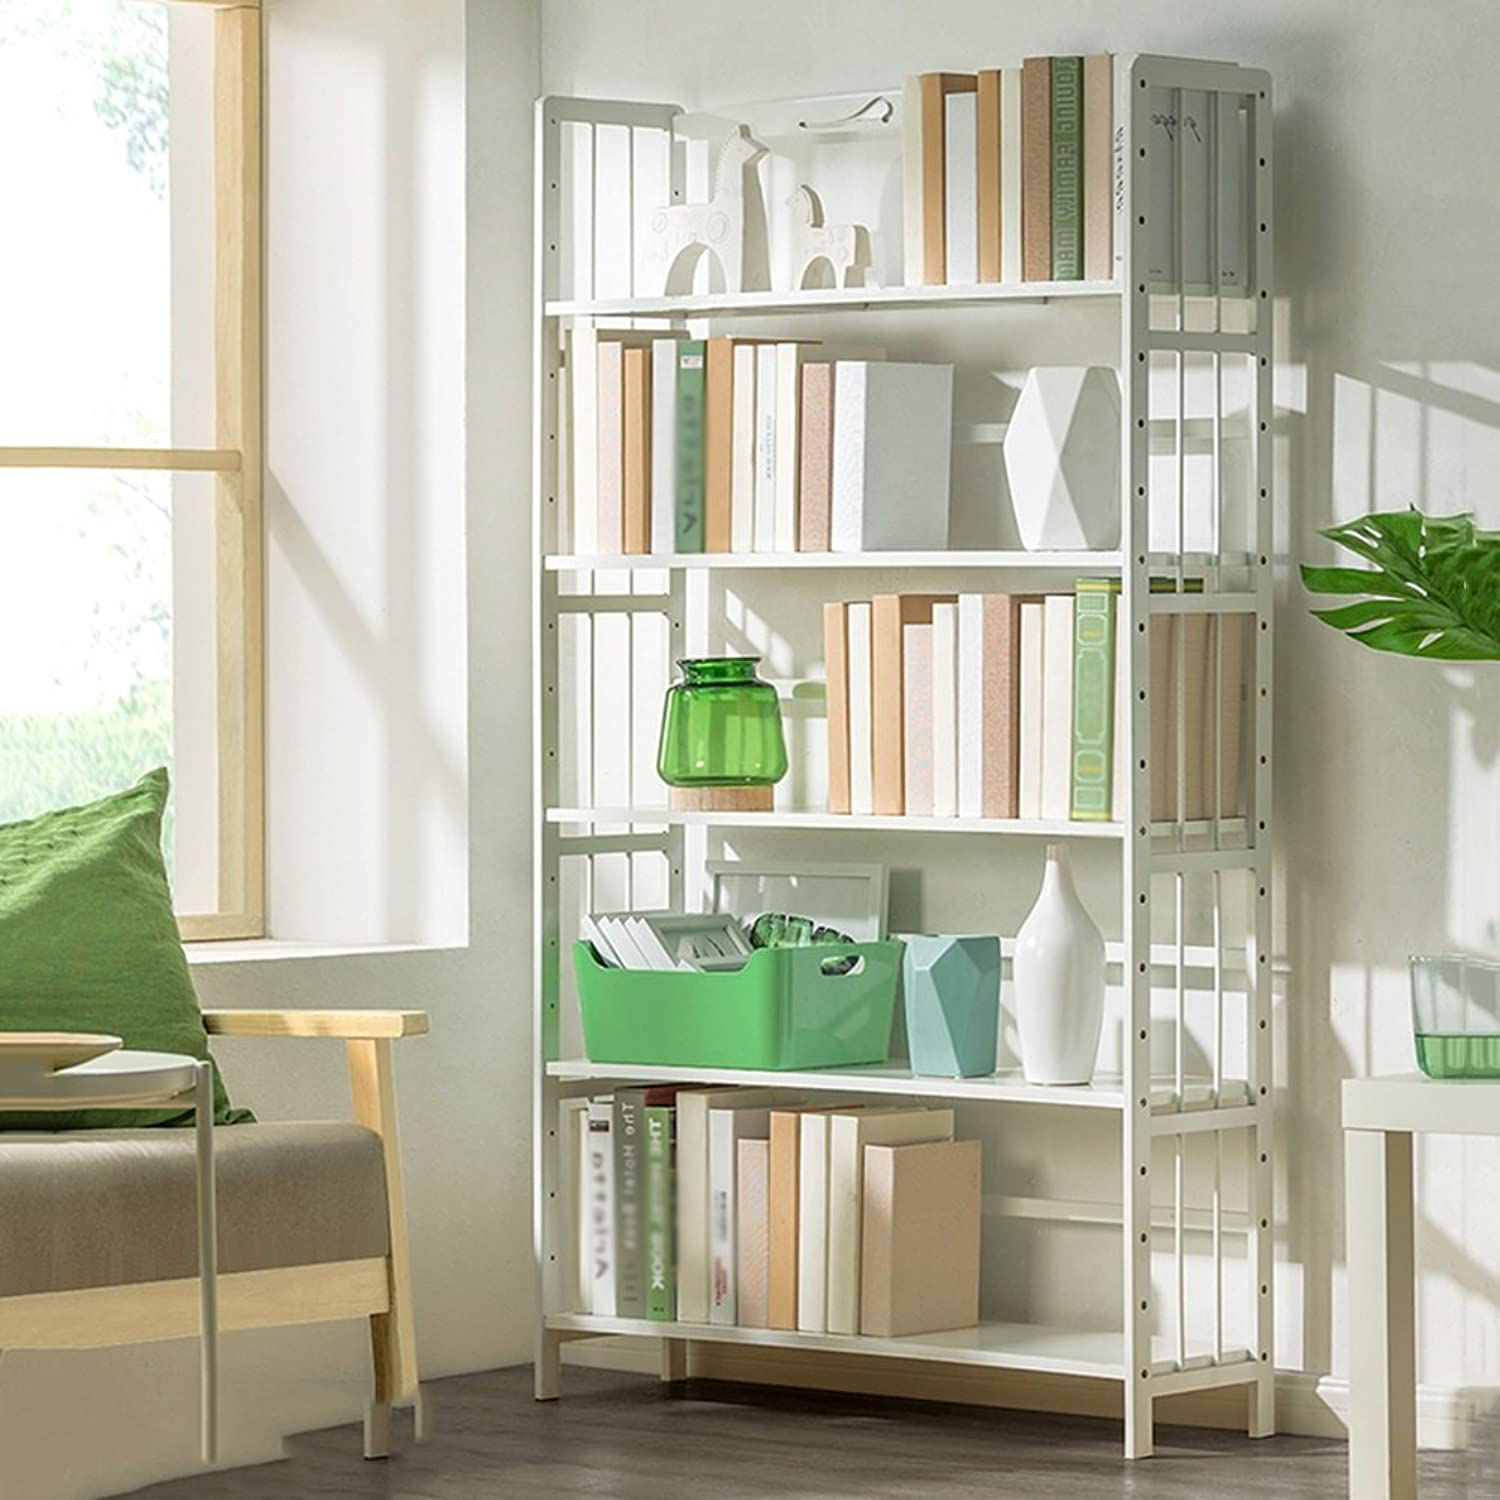 QIANGDA White Bookshelf Bookcase Bamboo Bookcase Multilayer Storage Rack Wood Commodity Shelf, 3 Tiers 4 Tiers 5 Tiers Optional (Size   50 x 25 x 157cm)